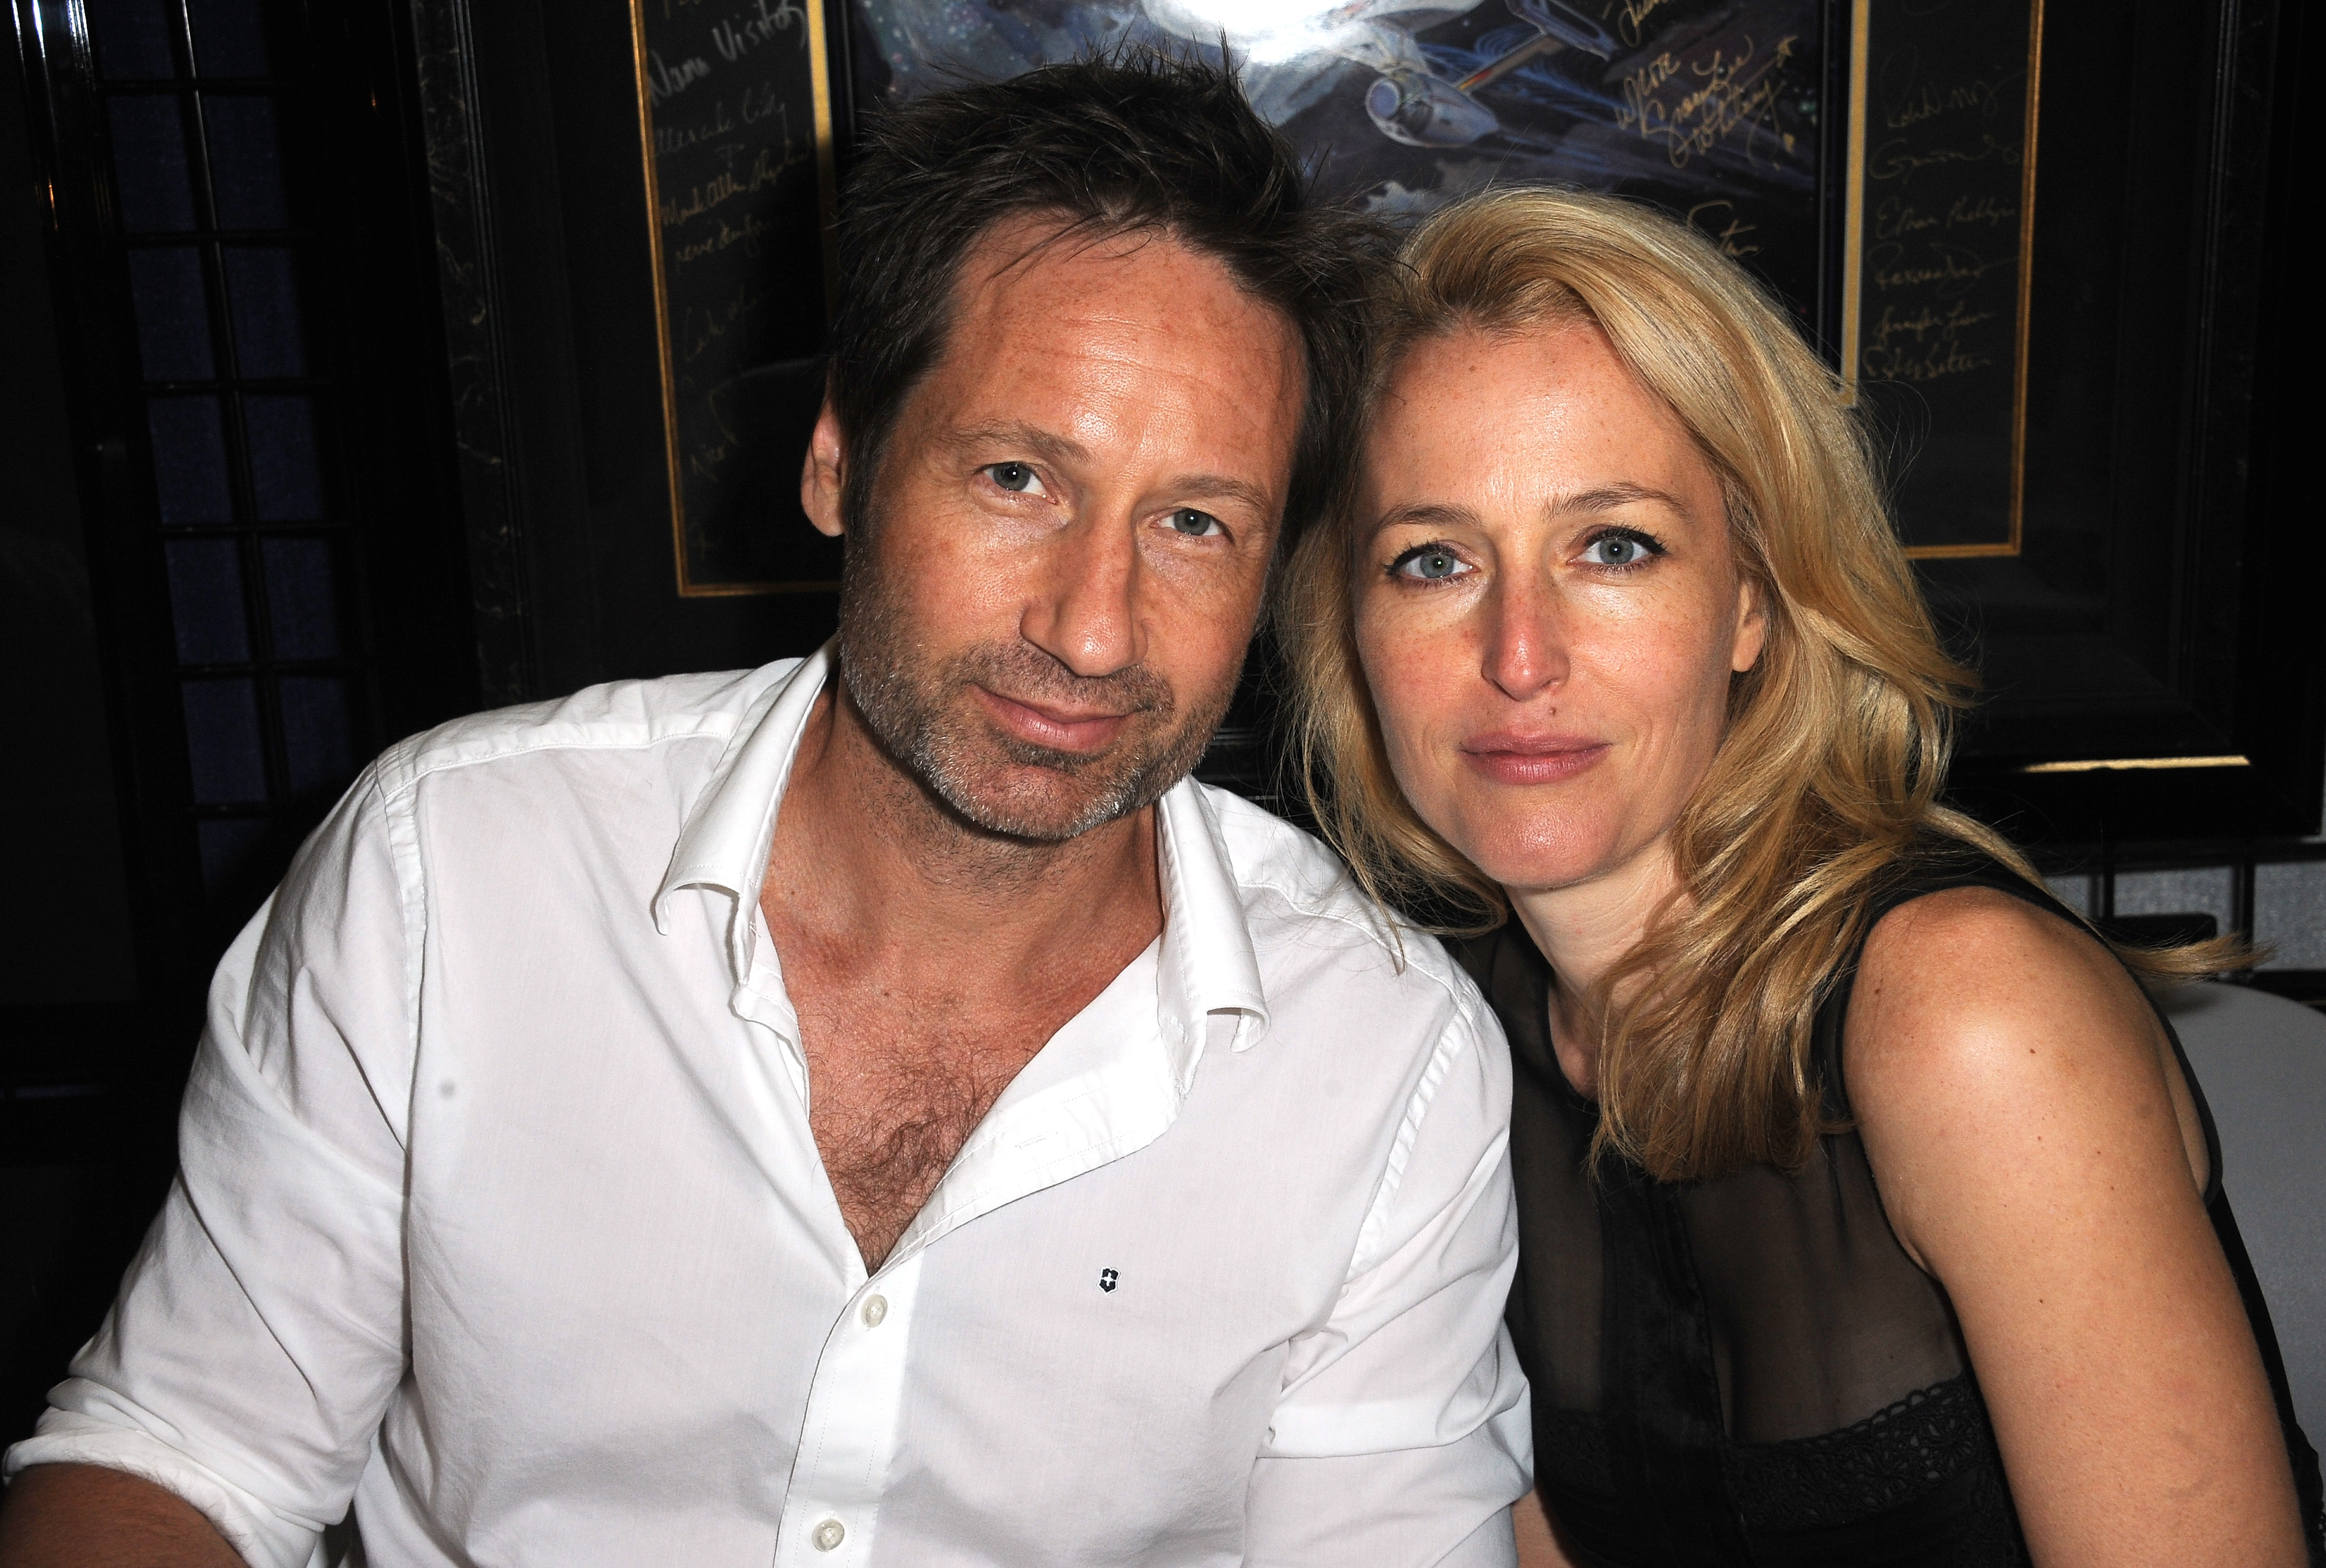 SAN DIEGO, CA - JULY 18:  Actor David Duchovny and Gillian Anderson of 'The X-Files'  sign autographs at the LightSpeed Booth